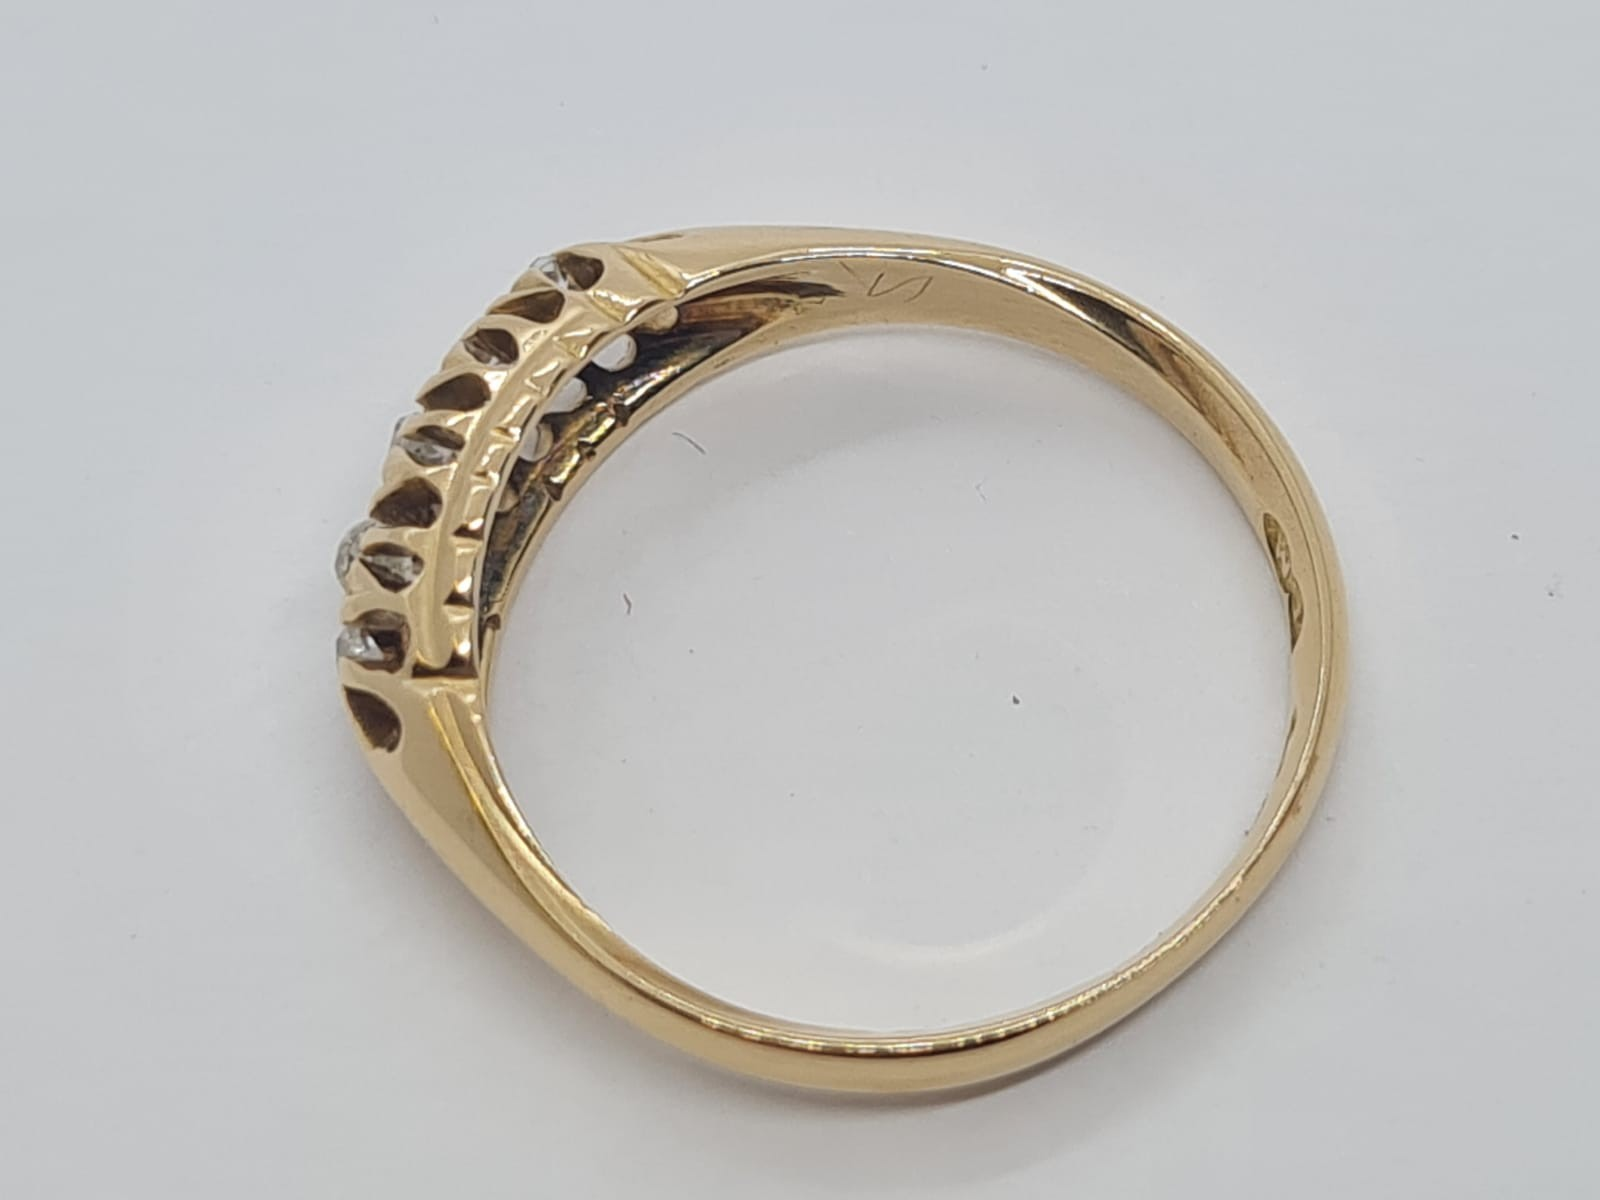 18k Yellow gold vintage DIAMOND 5 STONE SET RING, APPROX 0.15CT DIAMONDS, WEIGHT 2.9g SIZE N - Image 3 of 4